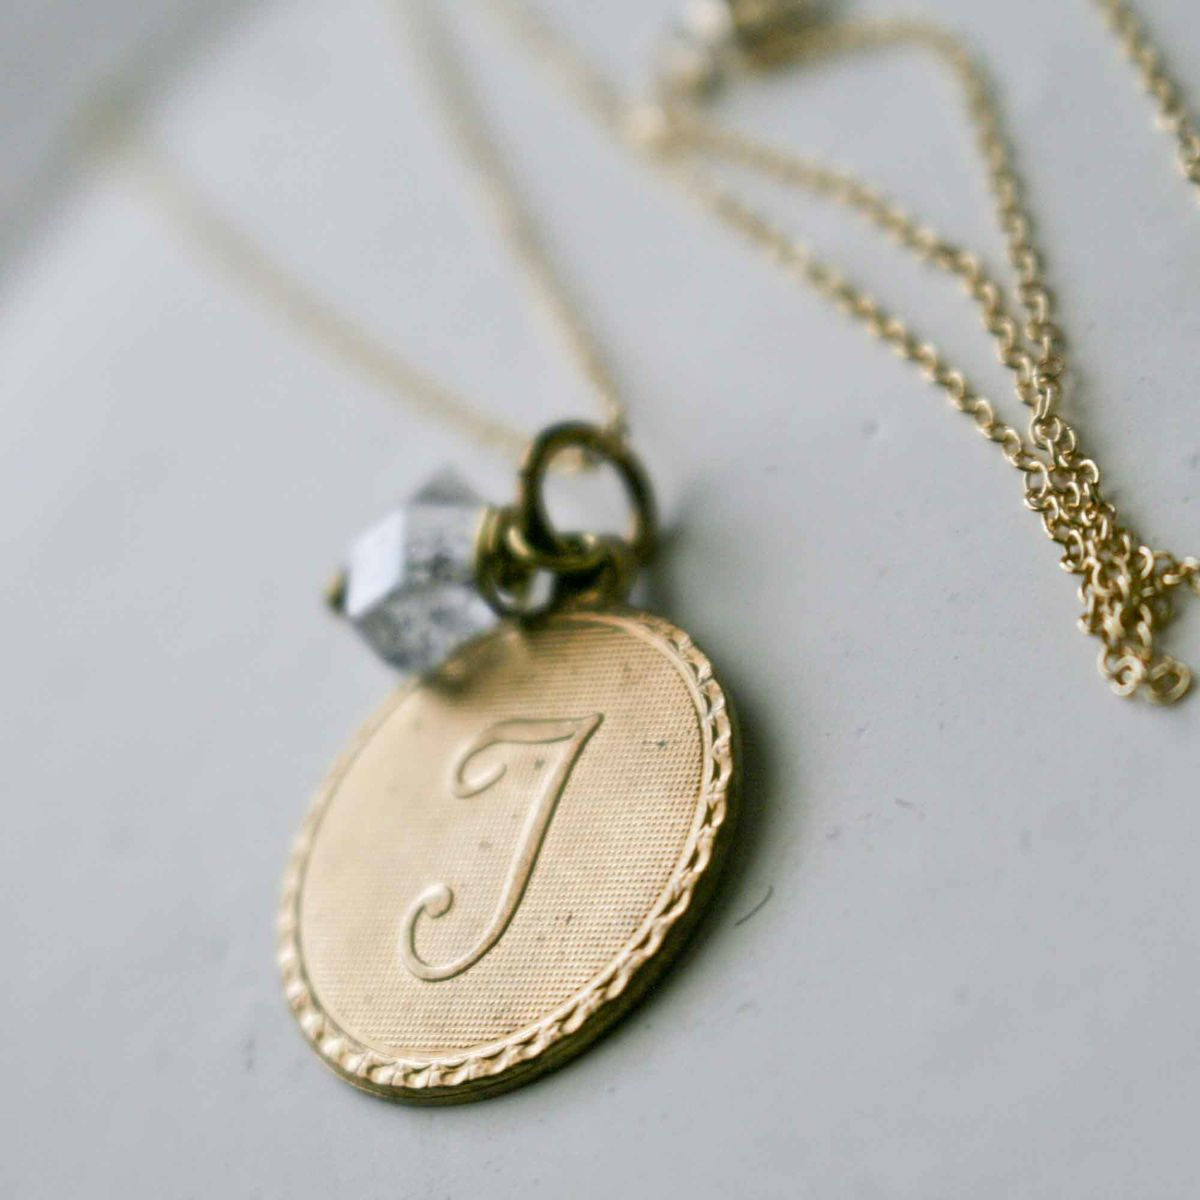 Uppercase Cursive Initial Monogram Letter Round Disc Charm Necklace Intended For Latest Letter K Alphabet Locket Element Necklaces (View 15 of 25)